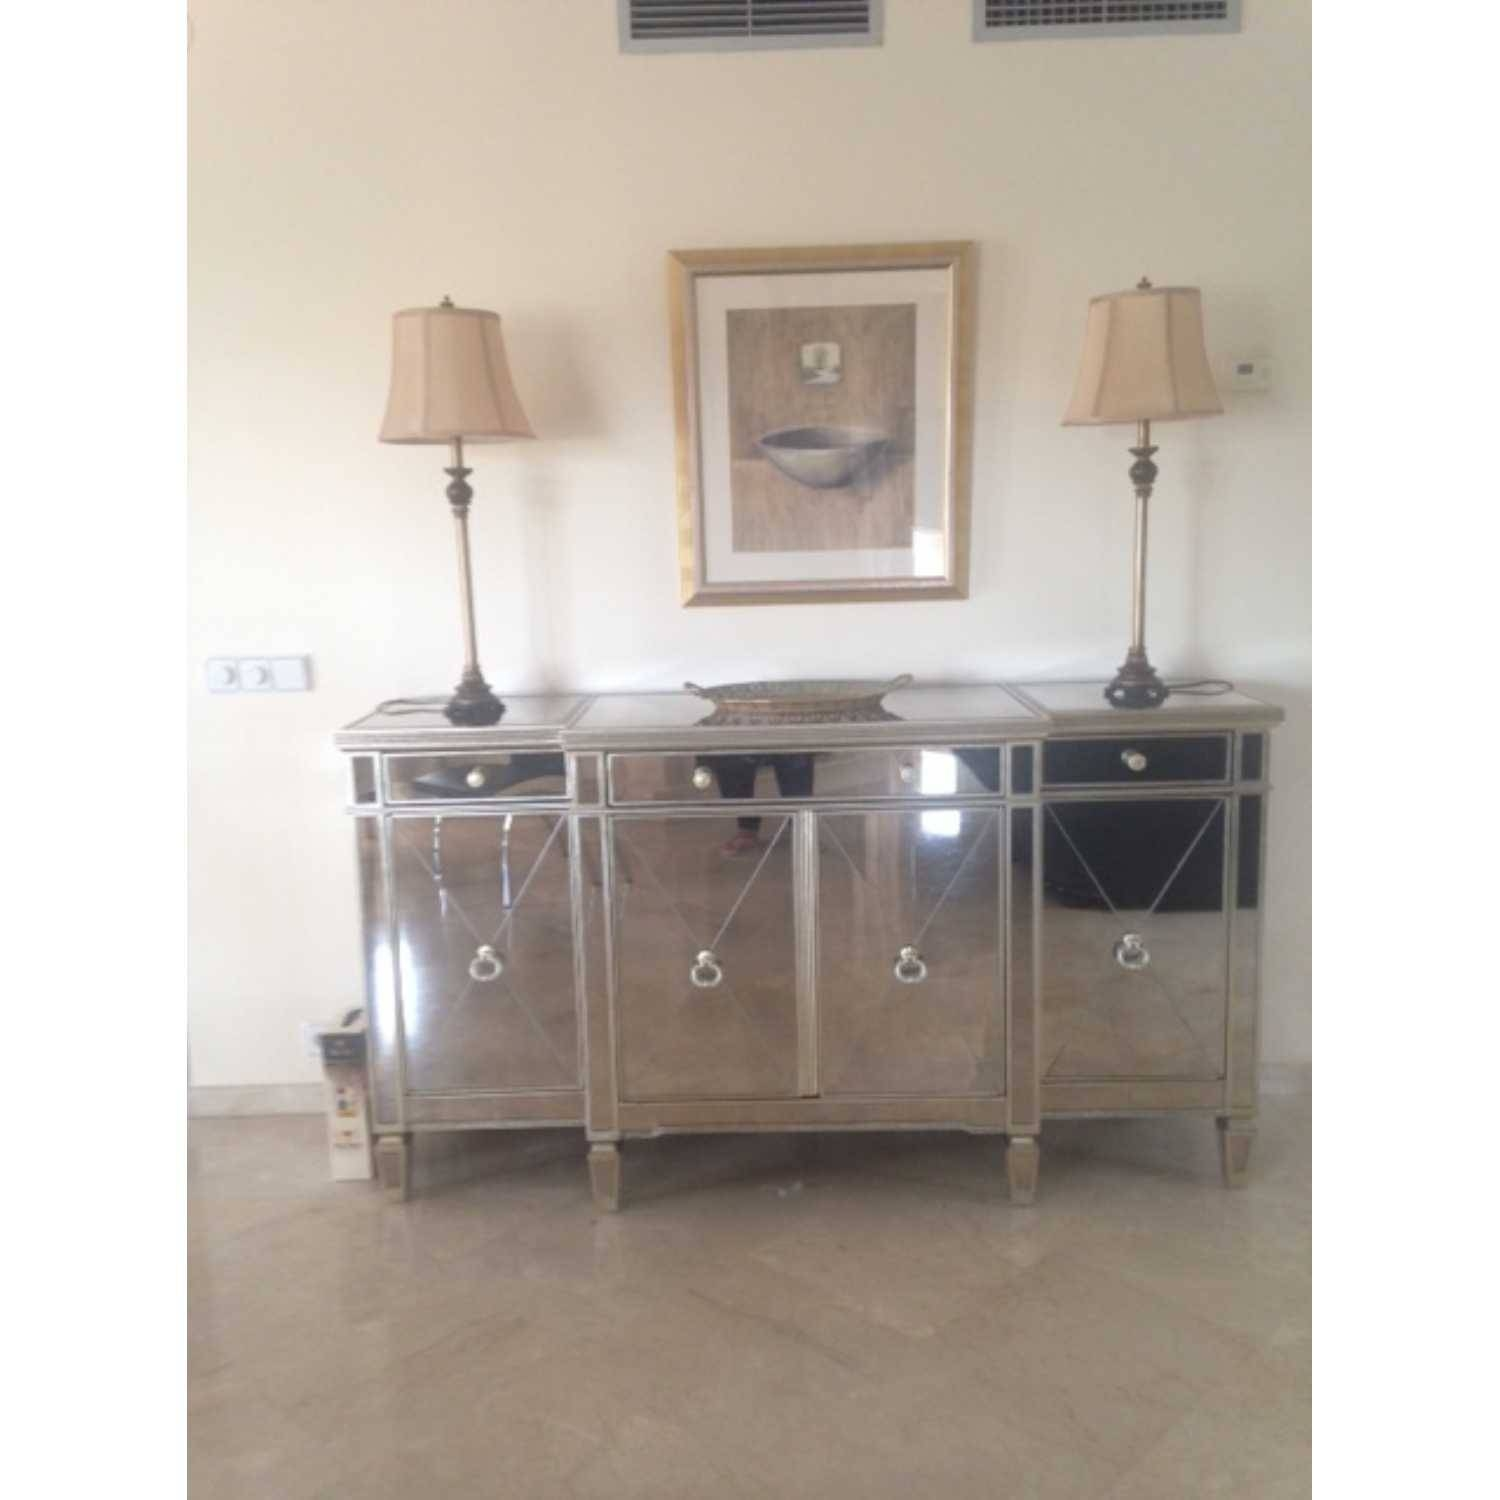 Large Antique Seville Venetian Mirrored Glass Sideboard 4 Door pertaining to Small Mirrored Sideboards (Image 11 of 30)